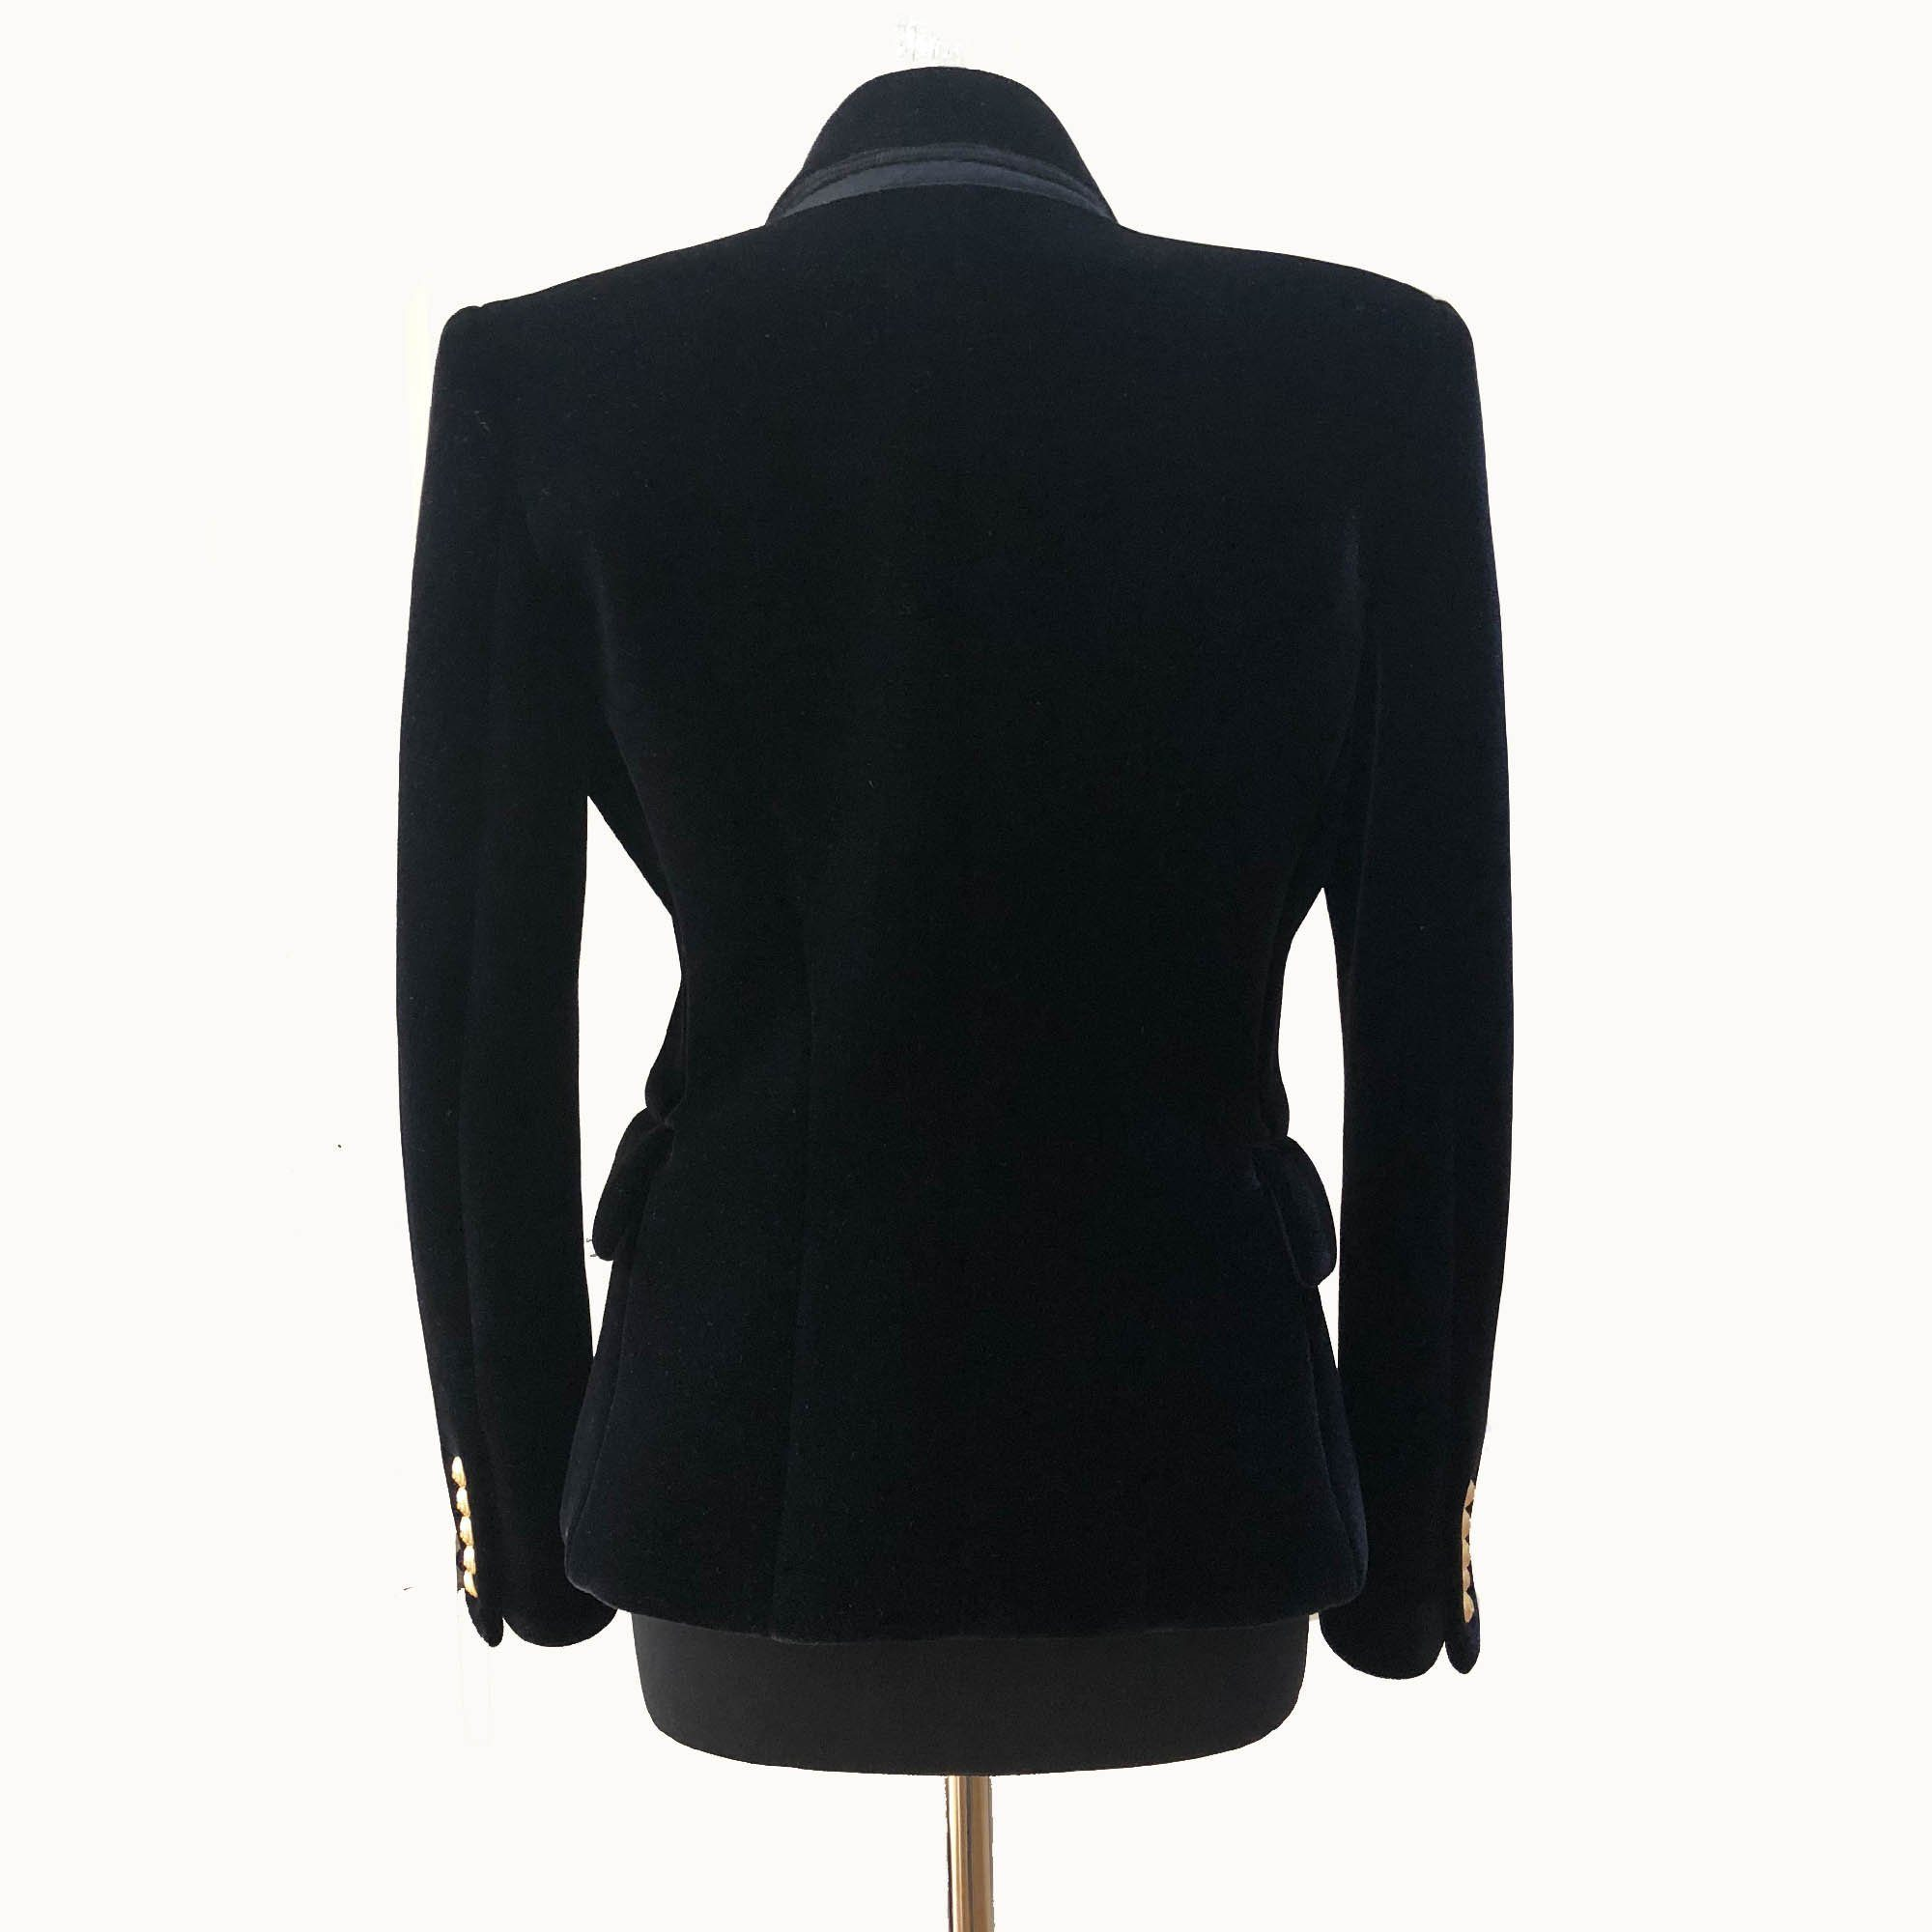 Balmain Double-breasted Peak-lapel Piqué Black Velvet Blazer